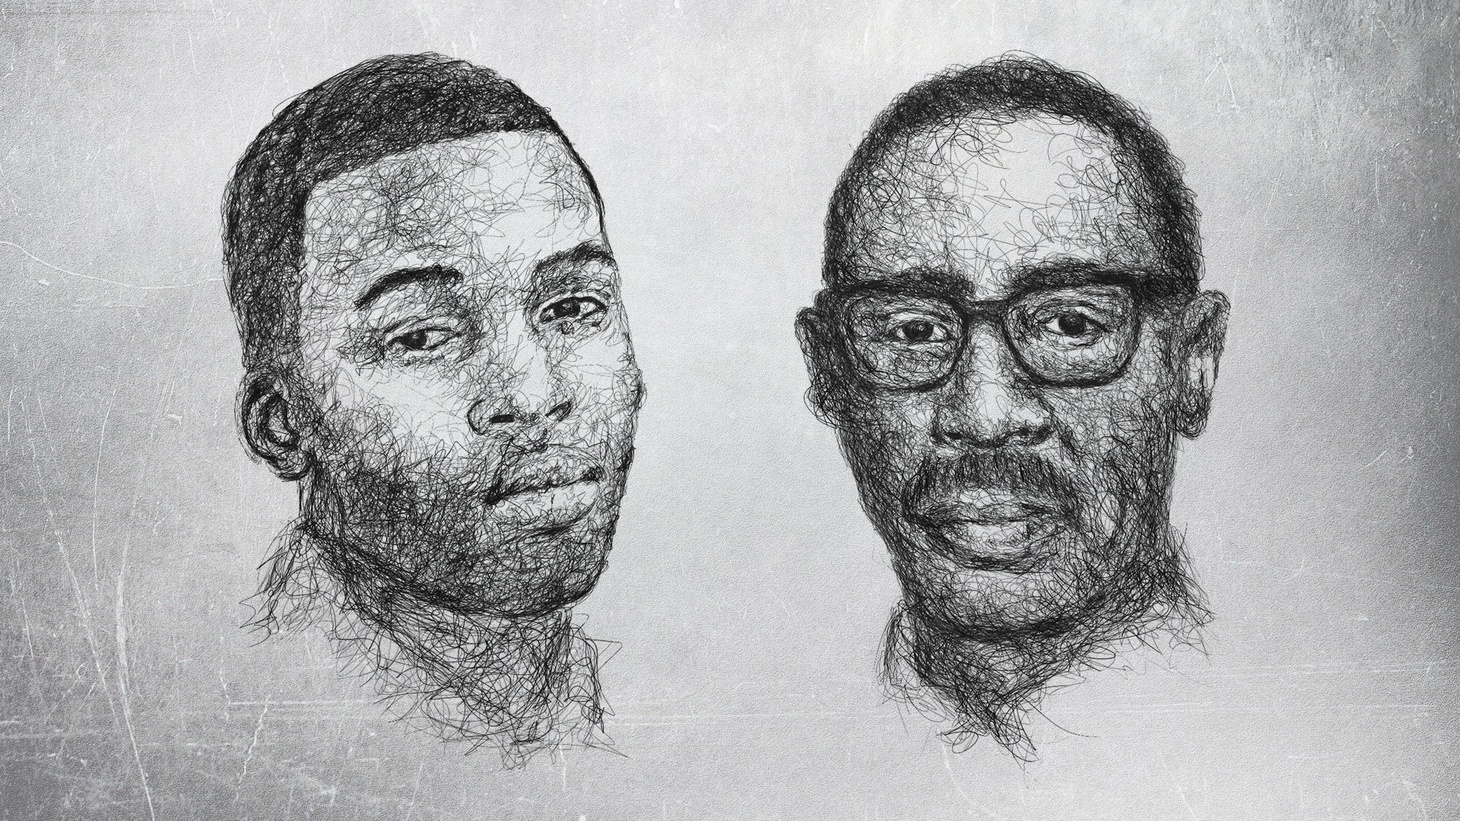 Gemmel Moore and Timothy Dean both died in the West Hollywood apartment of Ed Buck, years apart but under similar circumstances. Their lives are the focus of a new documentary.